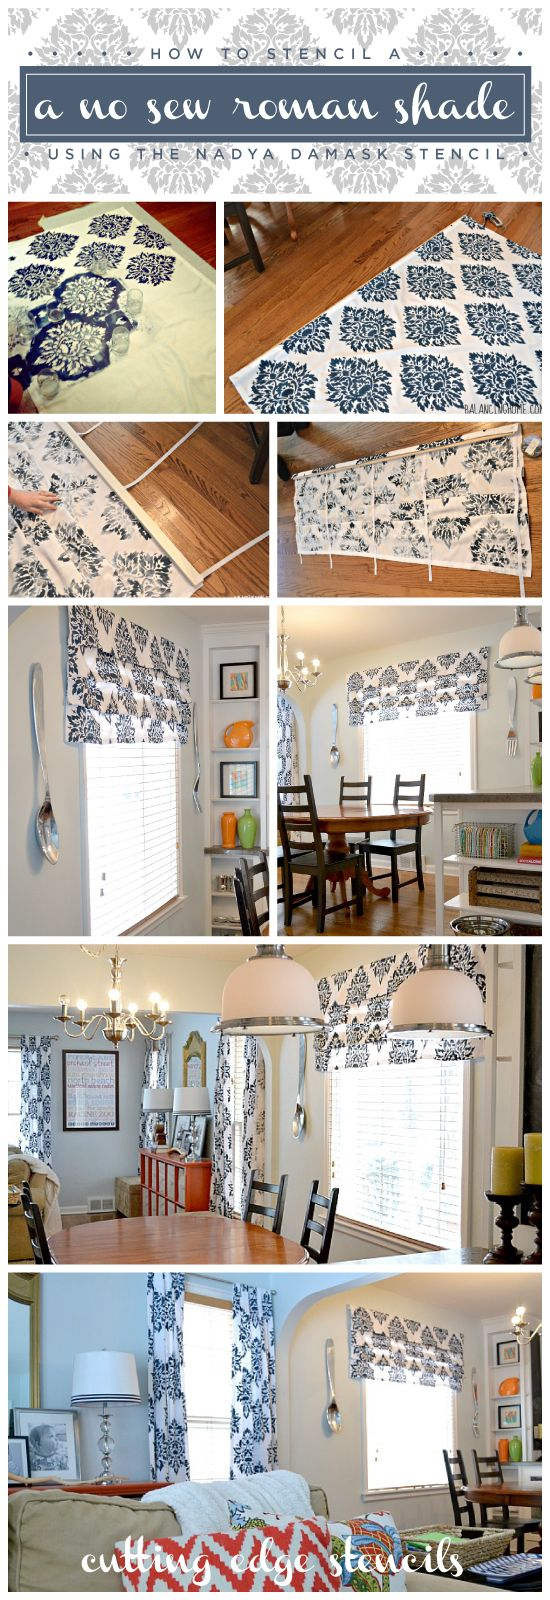 25 unique damask stencil ideas on pinterest gold damask learn how to stencil your own no sew roman shades using the nadya damask stencil amipublicfo Gallery